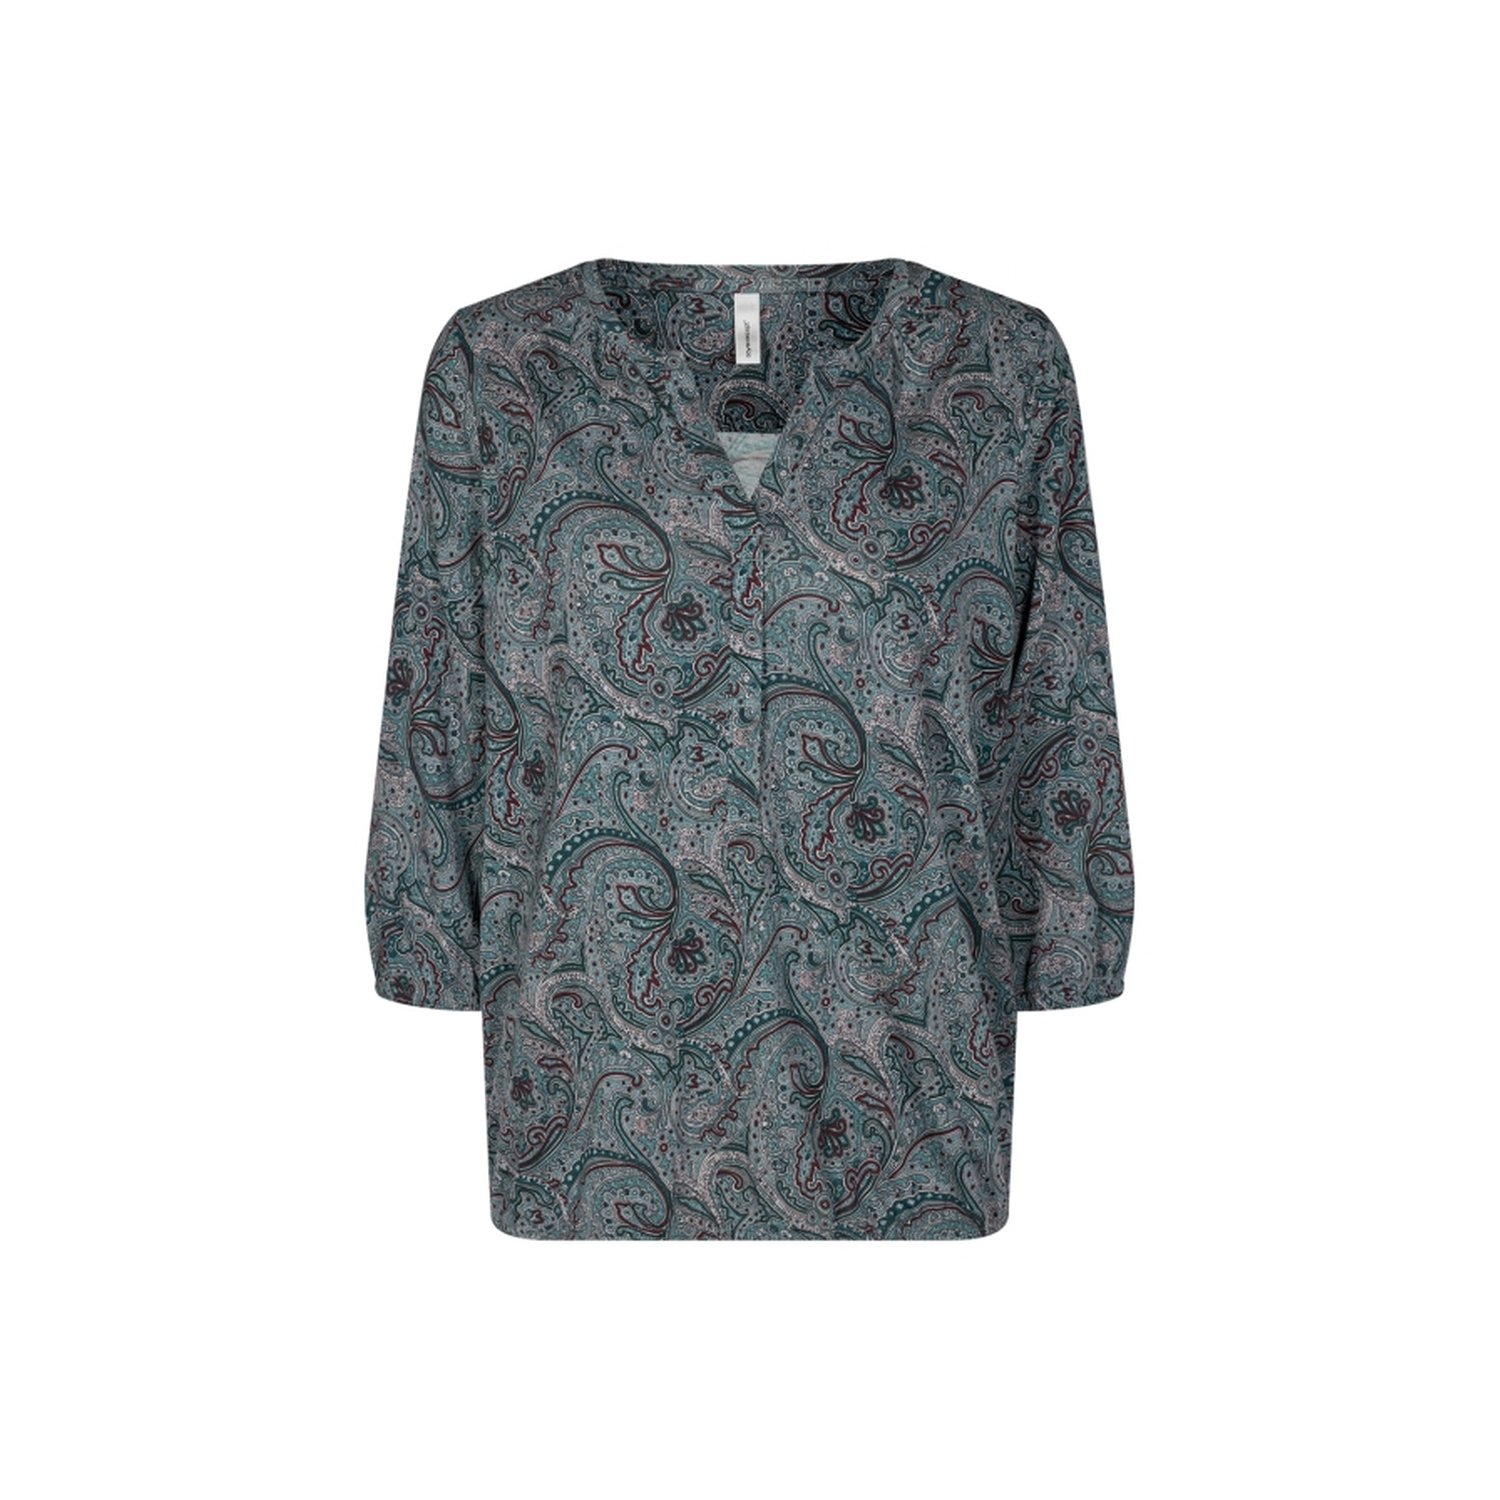 SOYACONCEPT leichte Shirtbluse 3/4 Arm Paisleymuster petrol